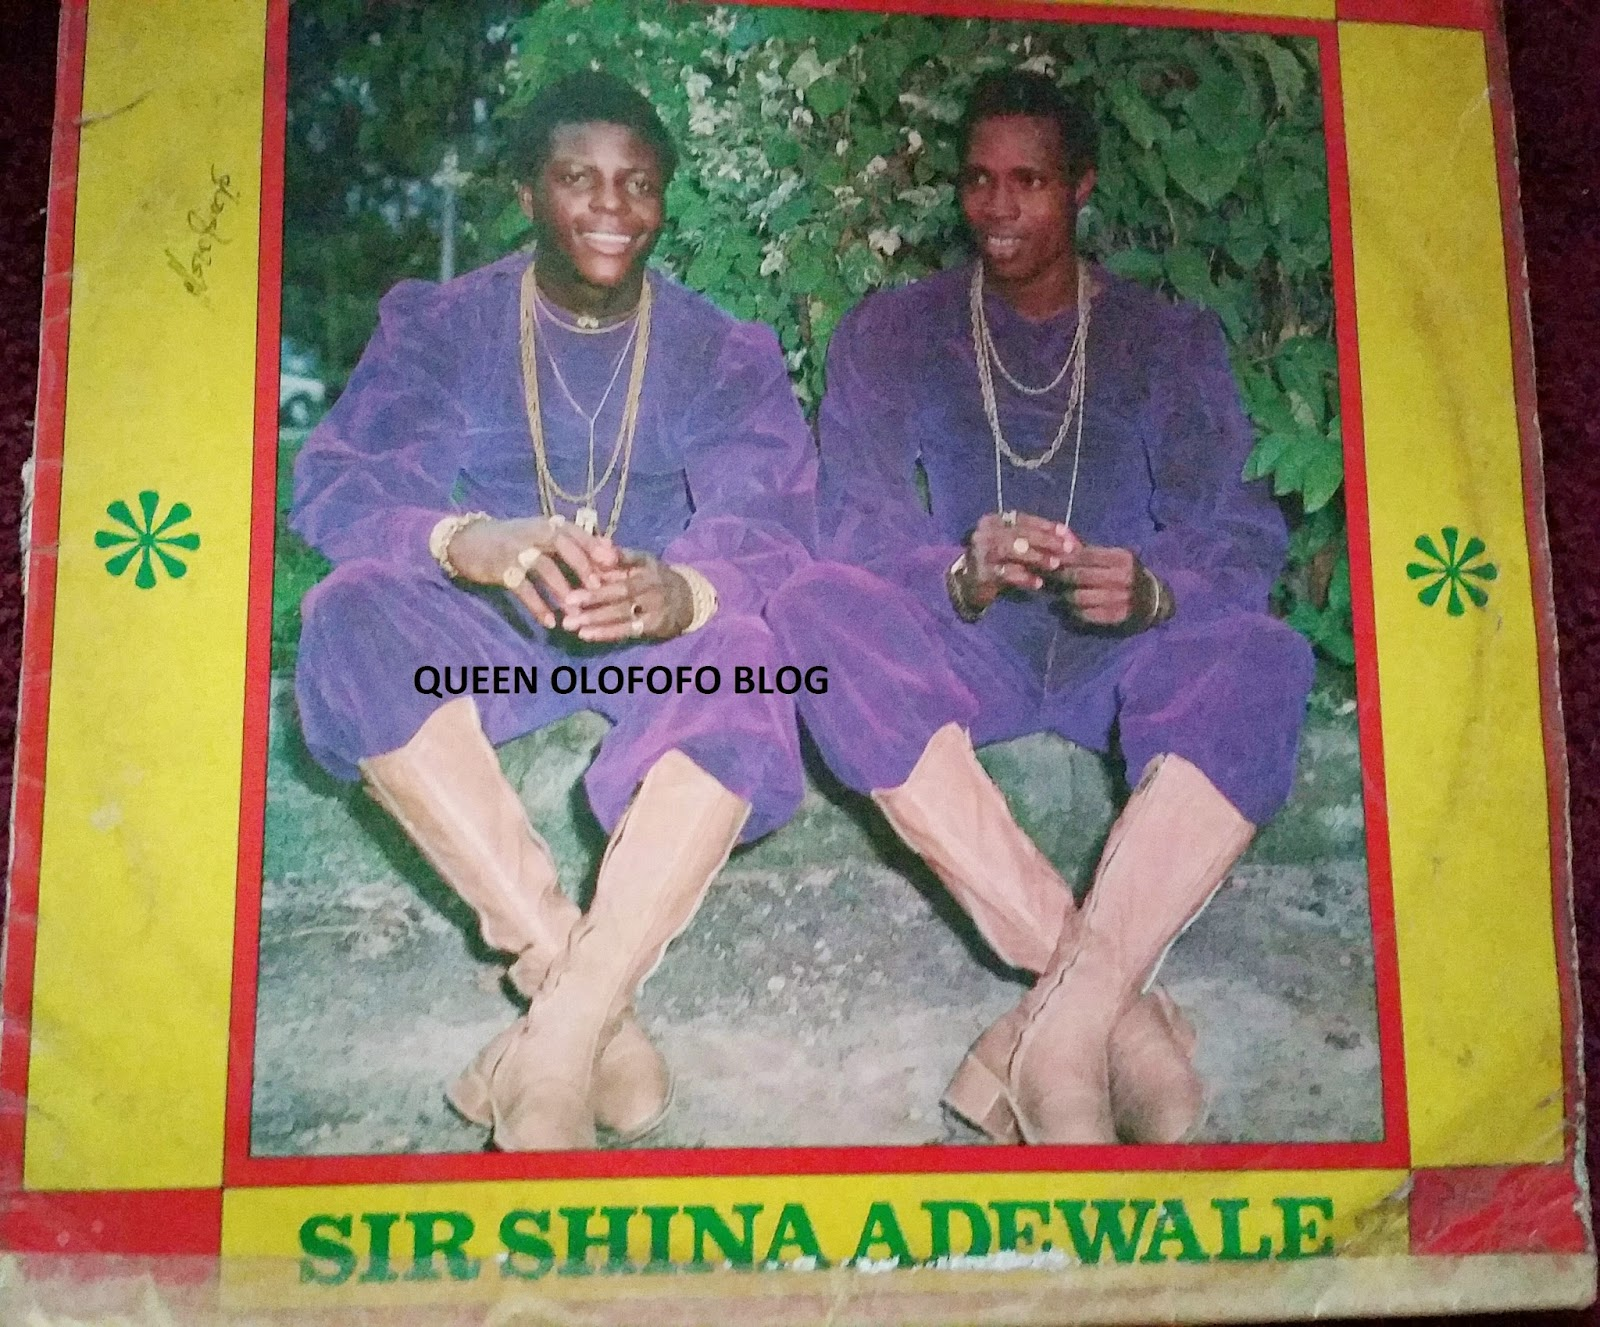 sir shina adewale ruled the airwaves in the 70s with funky juju